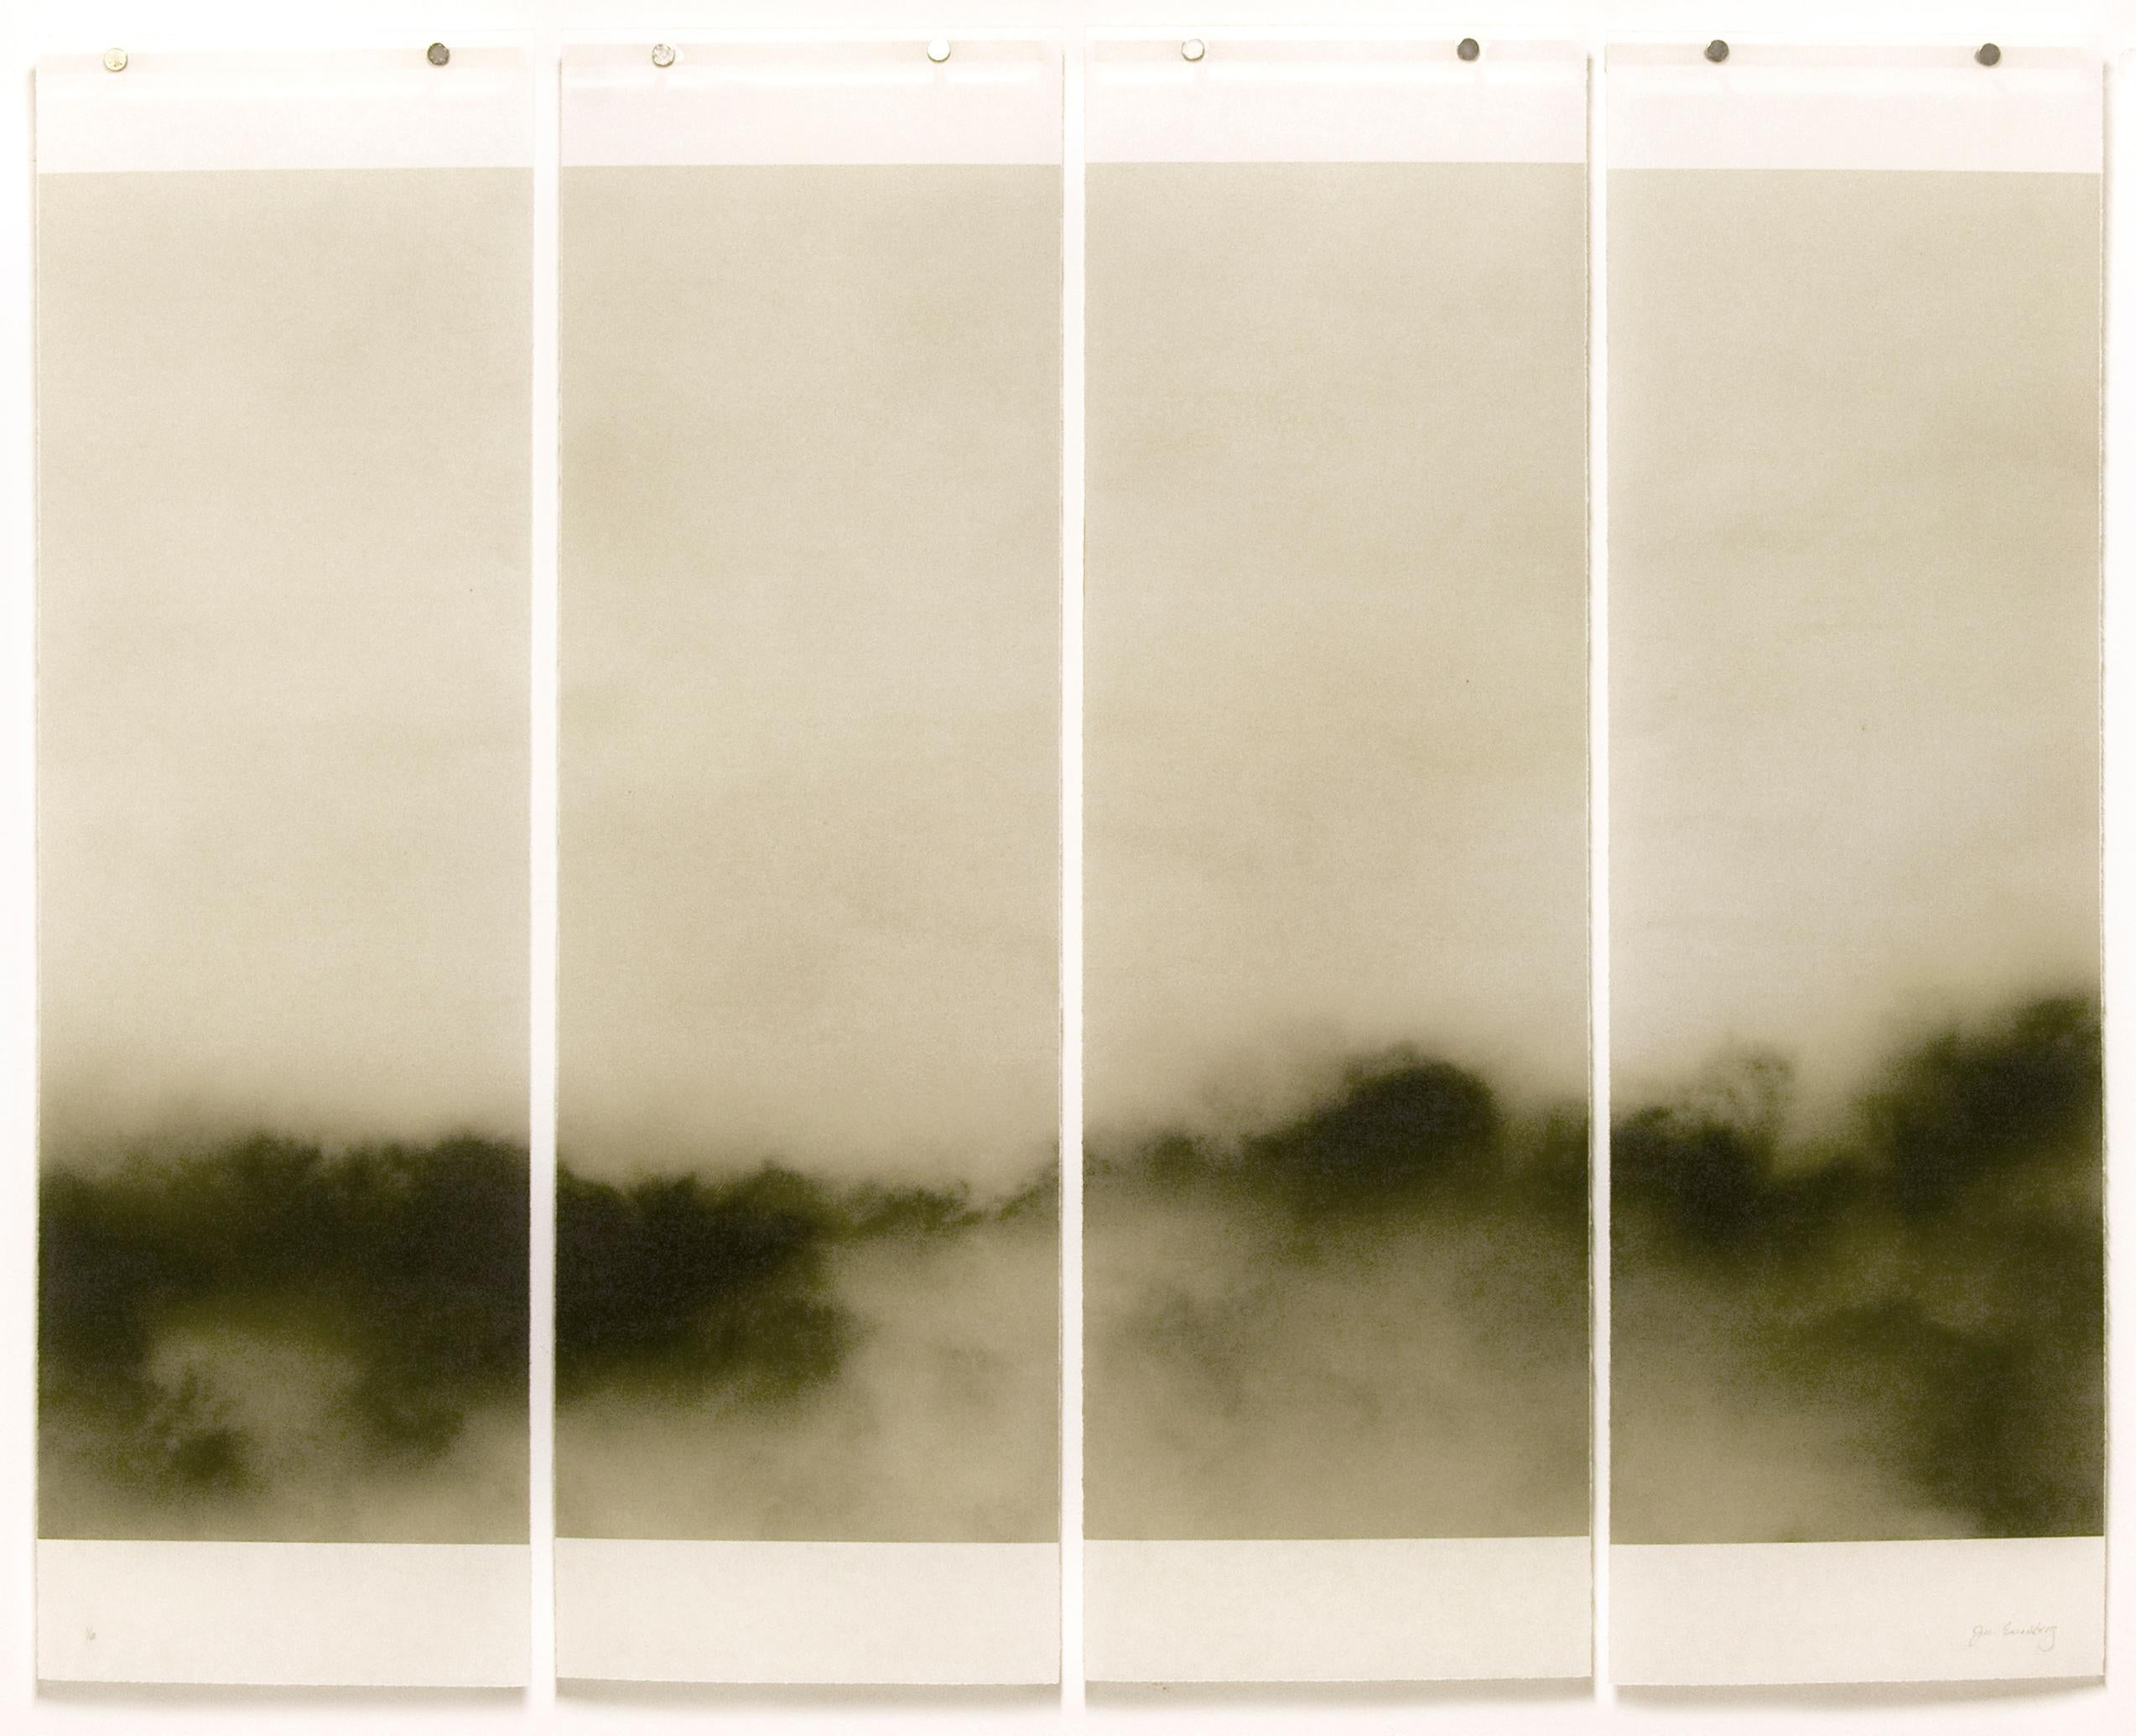 Songs of the Sky 2 (Abstract Landscape Photograph of Clouds in Sky, 4 panels)